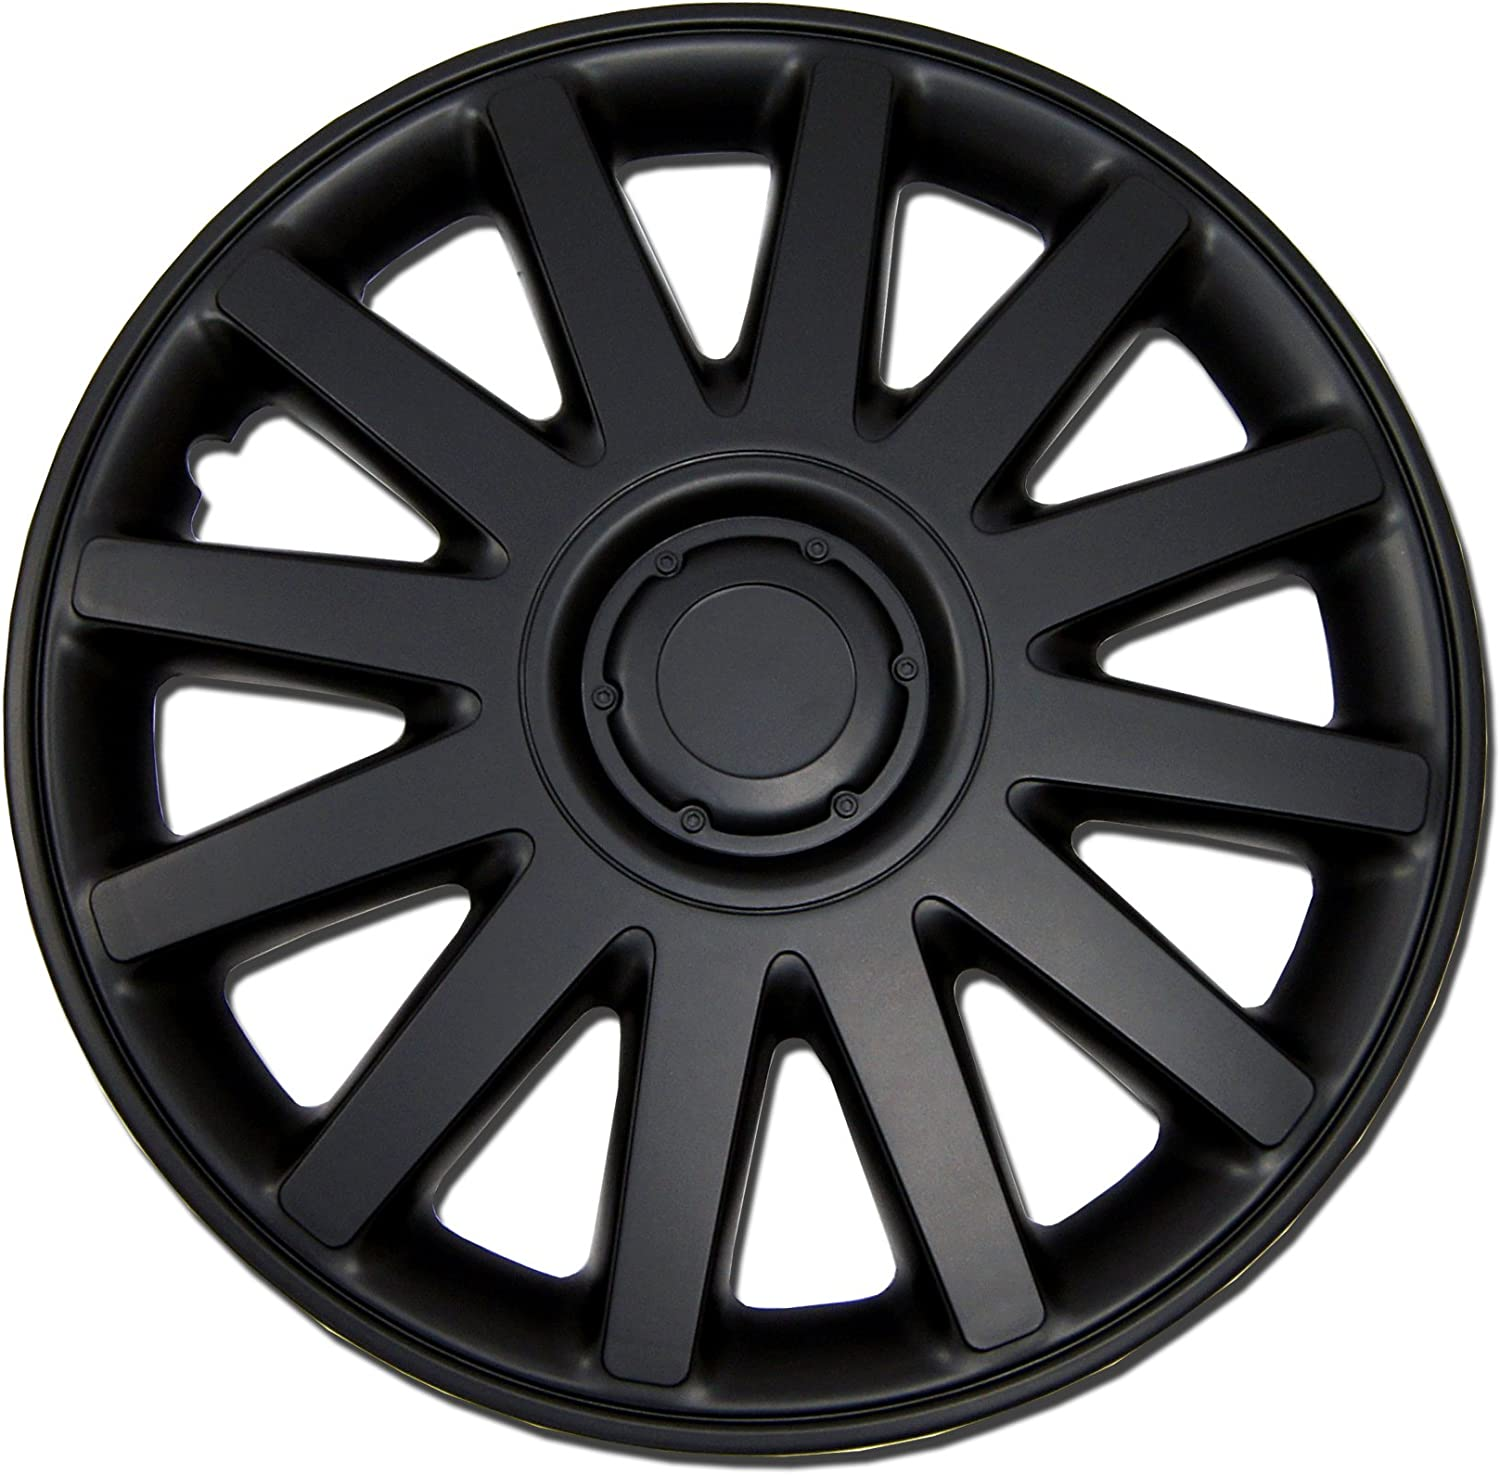 TuningPros WSC-610B15 Hubcaps Wheel Skin Cover 15-Inches Matte Black Set of 4